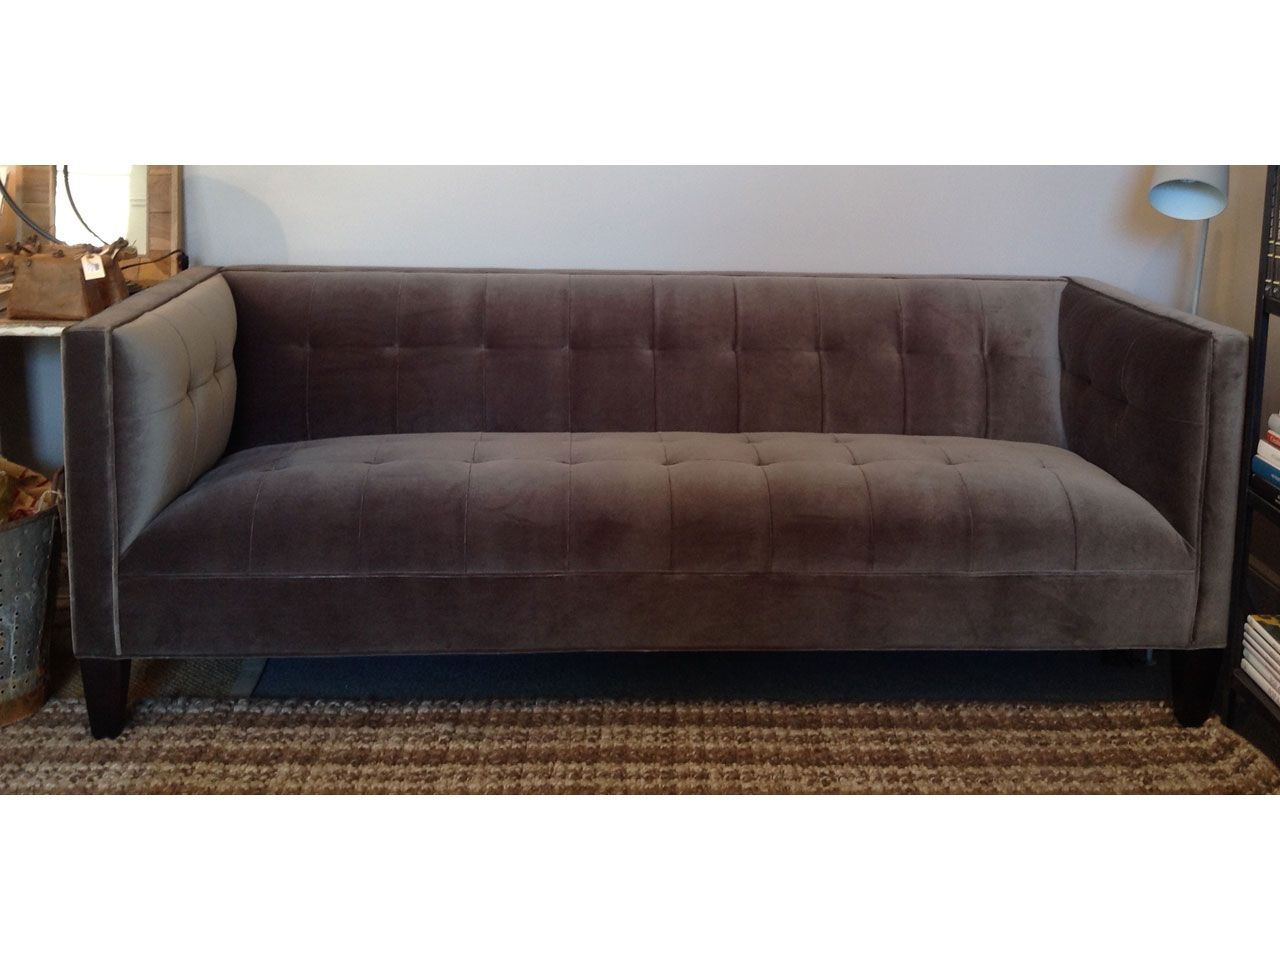 Mitchell gold sofa reviews - Kennedy 85 Sofa In Venice Graphite By Mitchell Gold And Bob Williams For